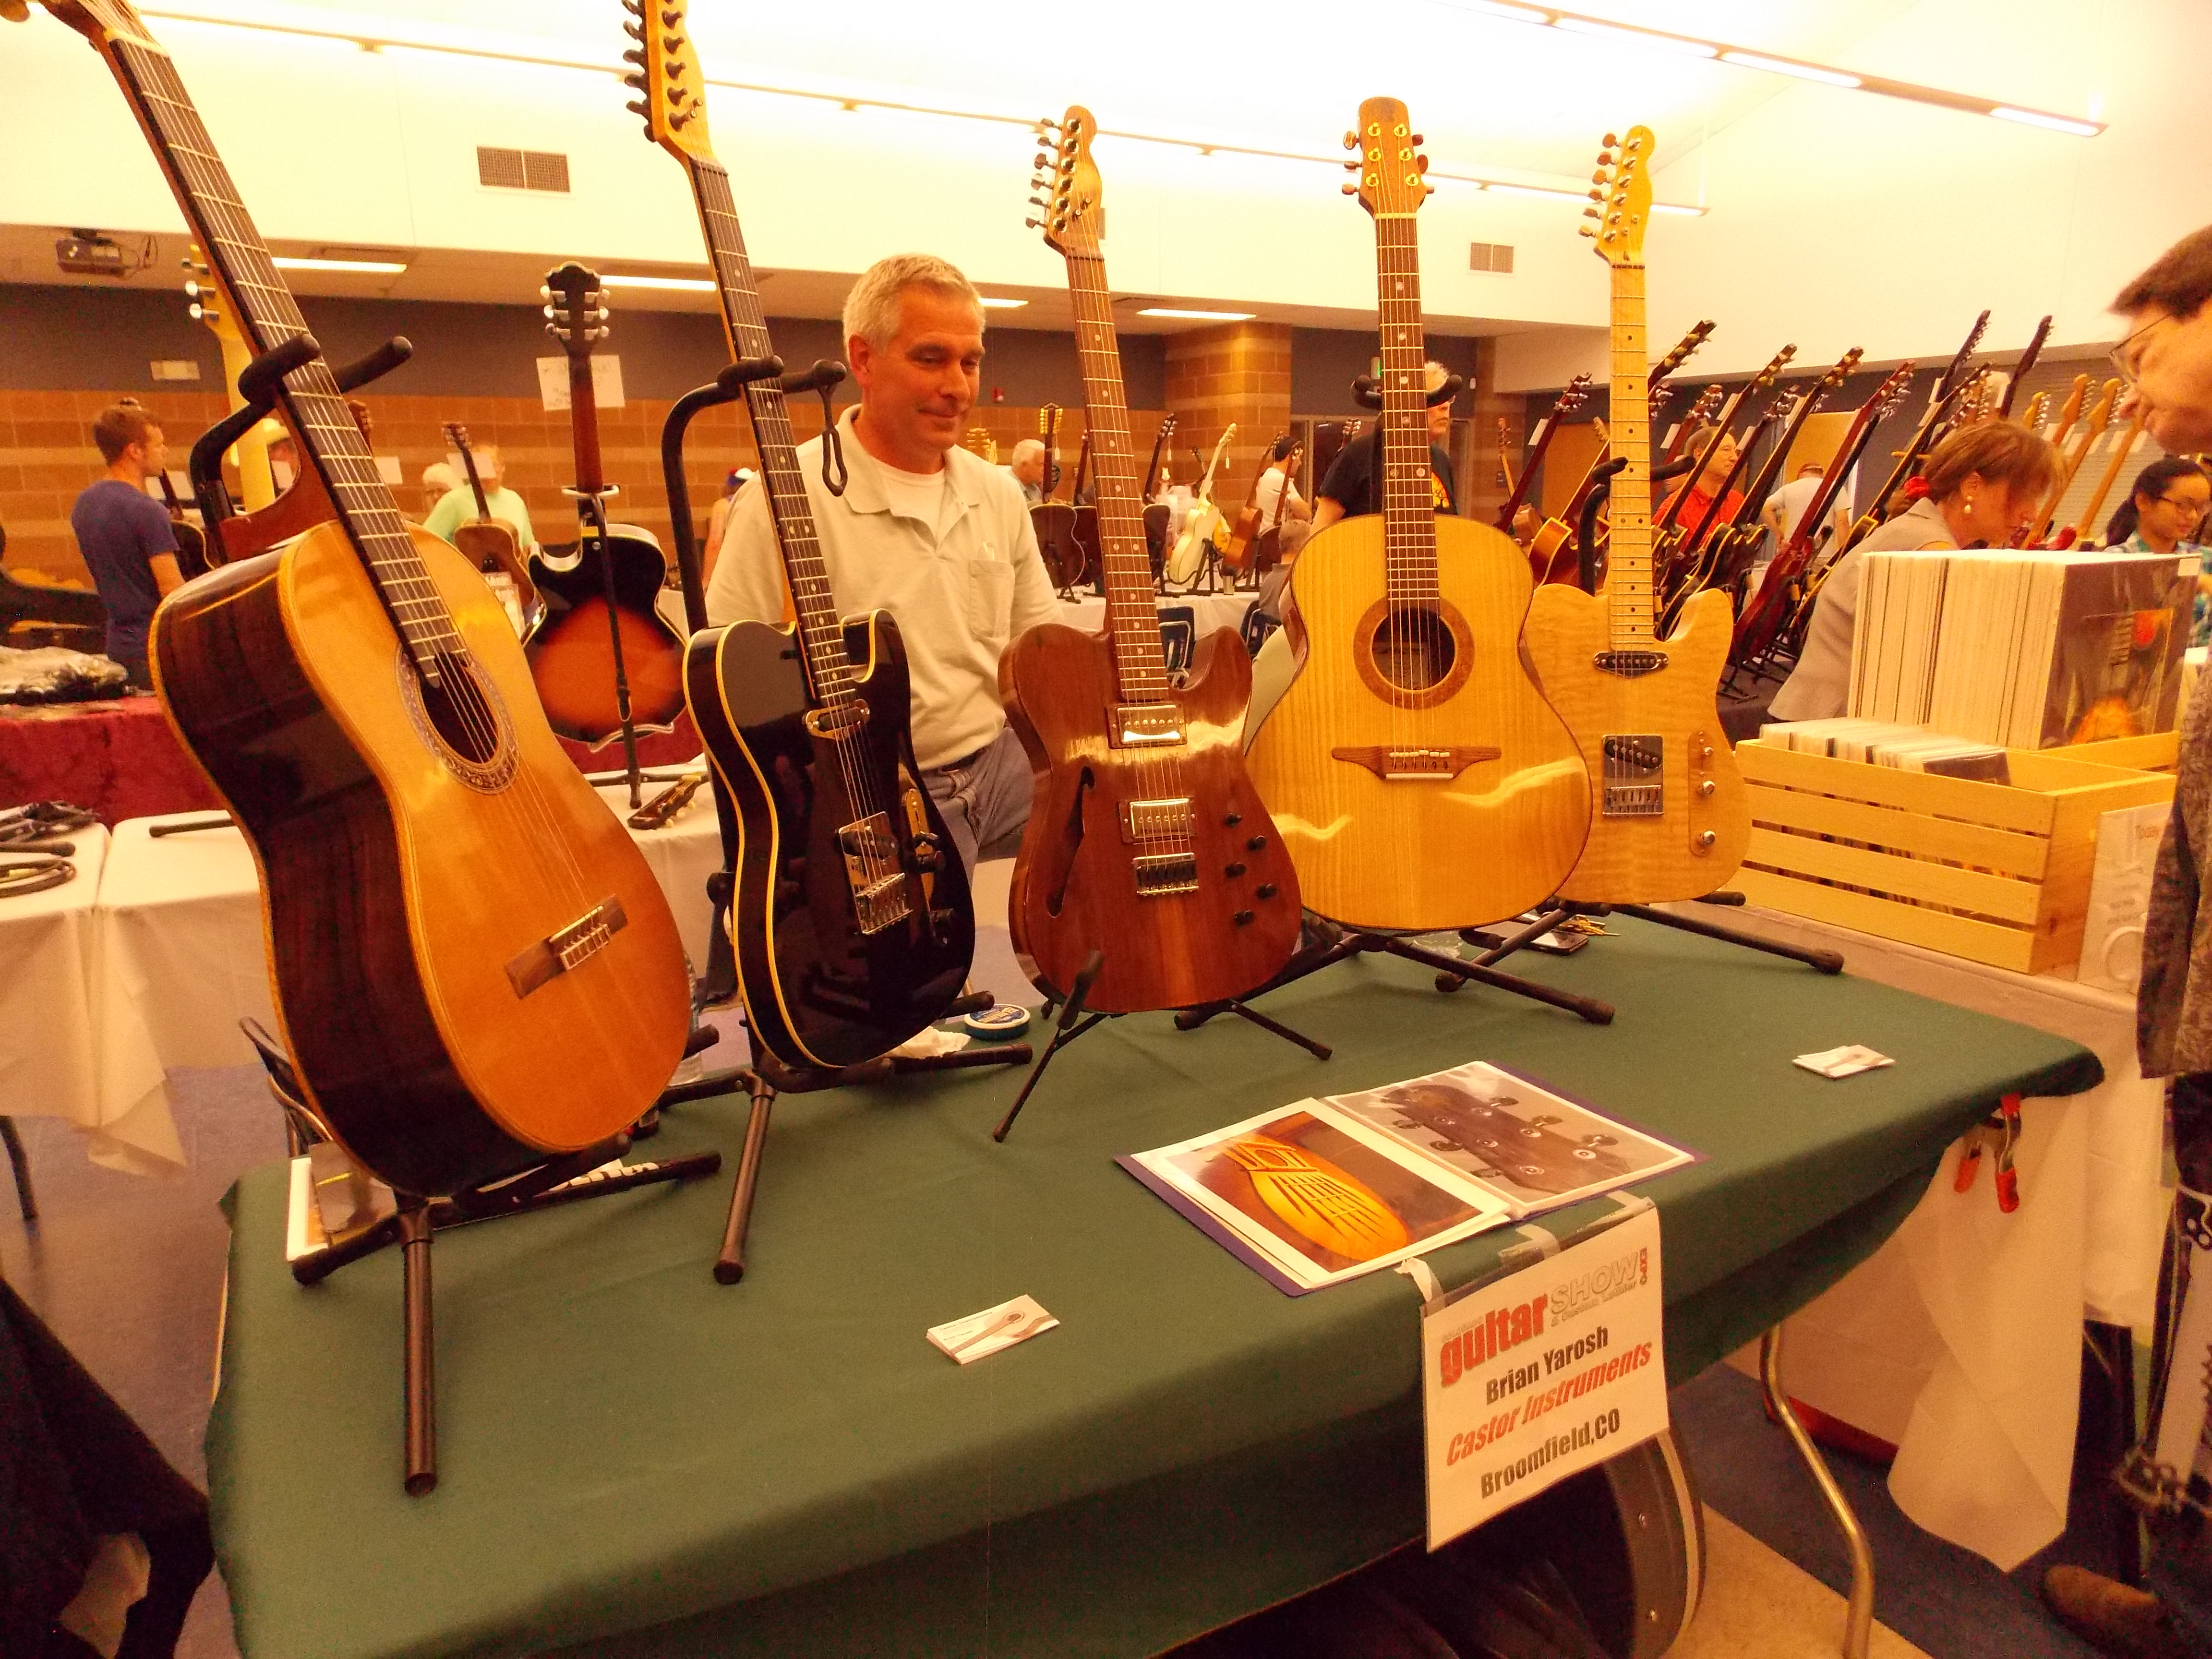 EVENTS: Colorado Guitar Show & Custom Luthier Expo THIS Saturday, June 29th – 10 to 4